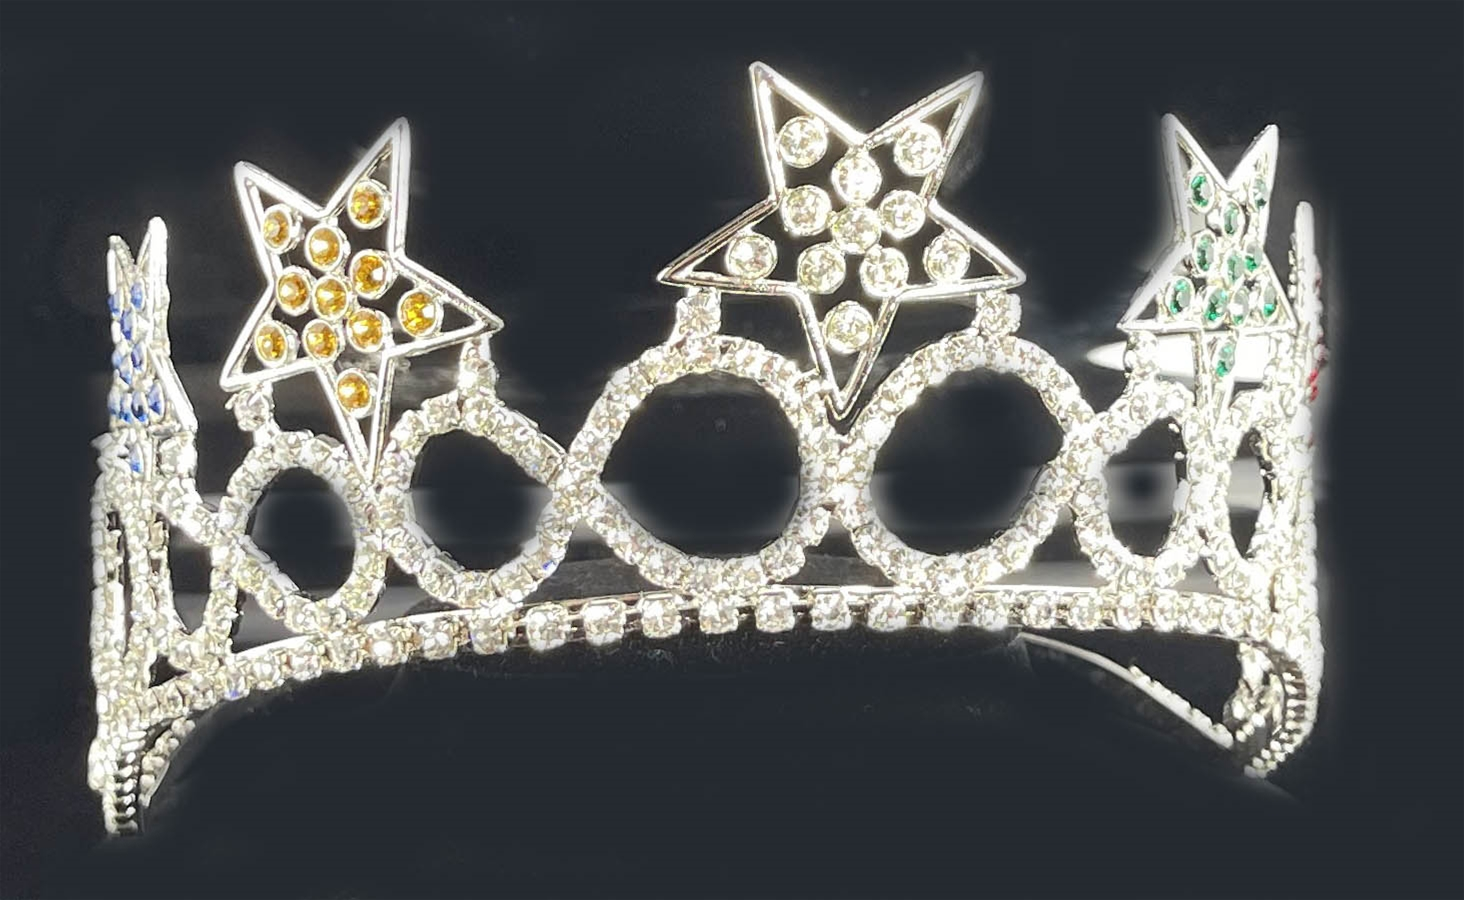 Iris-Order-of-the-Eastern-Star-Crown-in-silver-tone-with-colored-rhinestone-in-5-stars-P3027.aspx